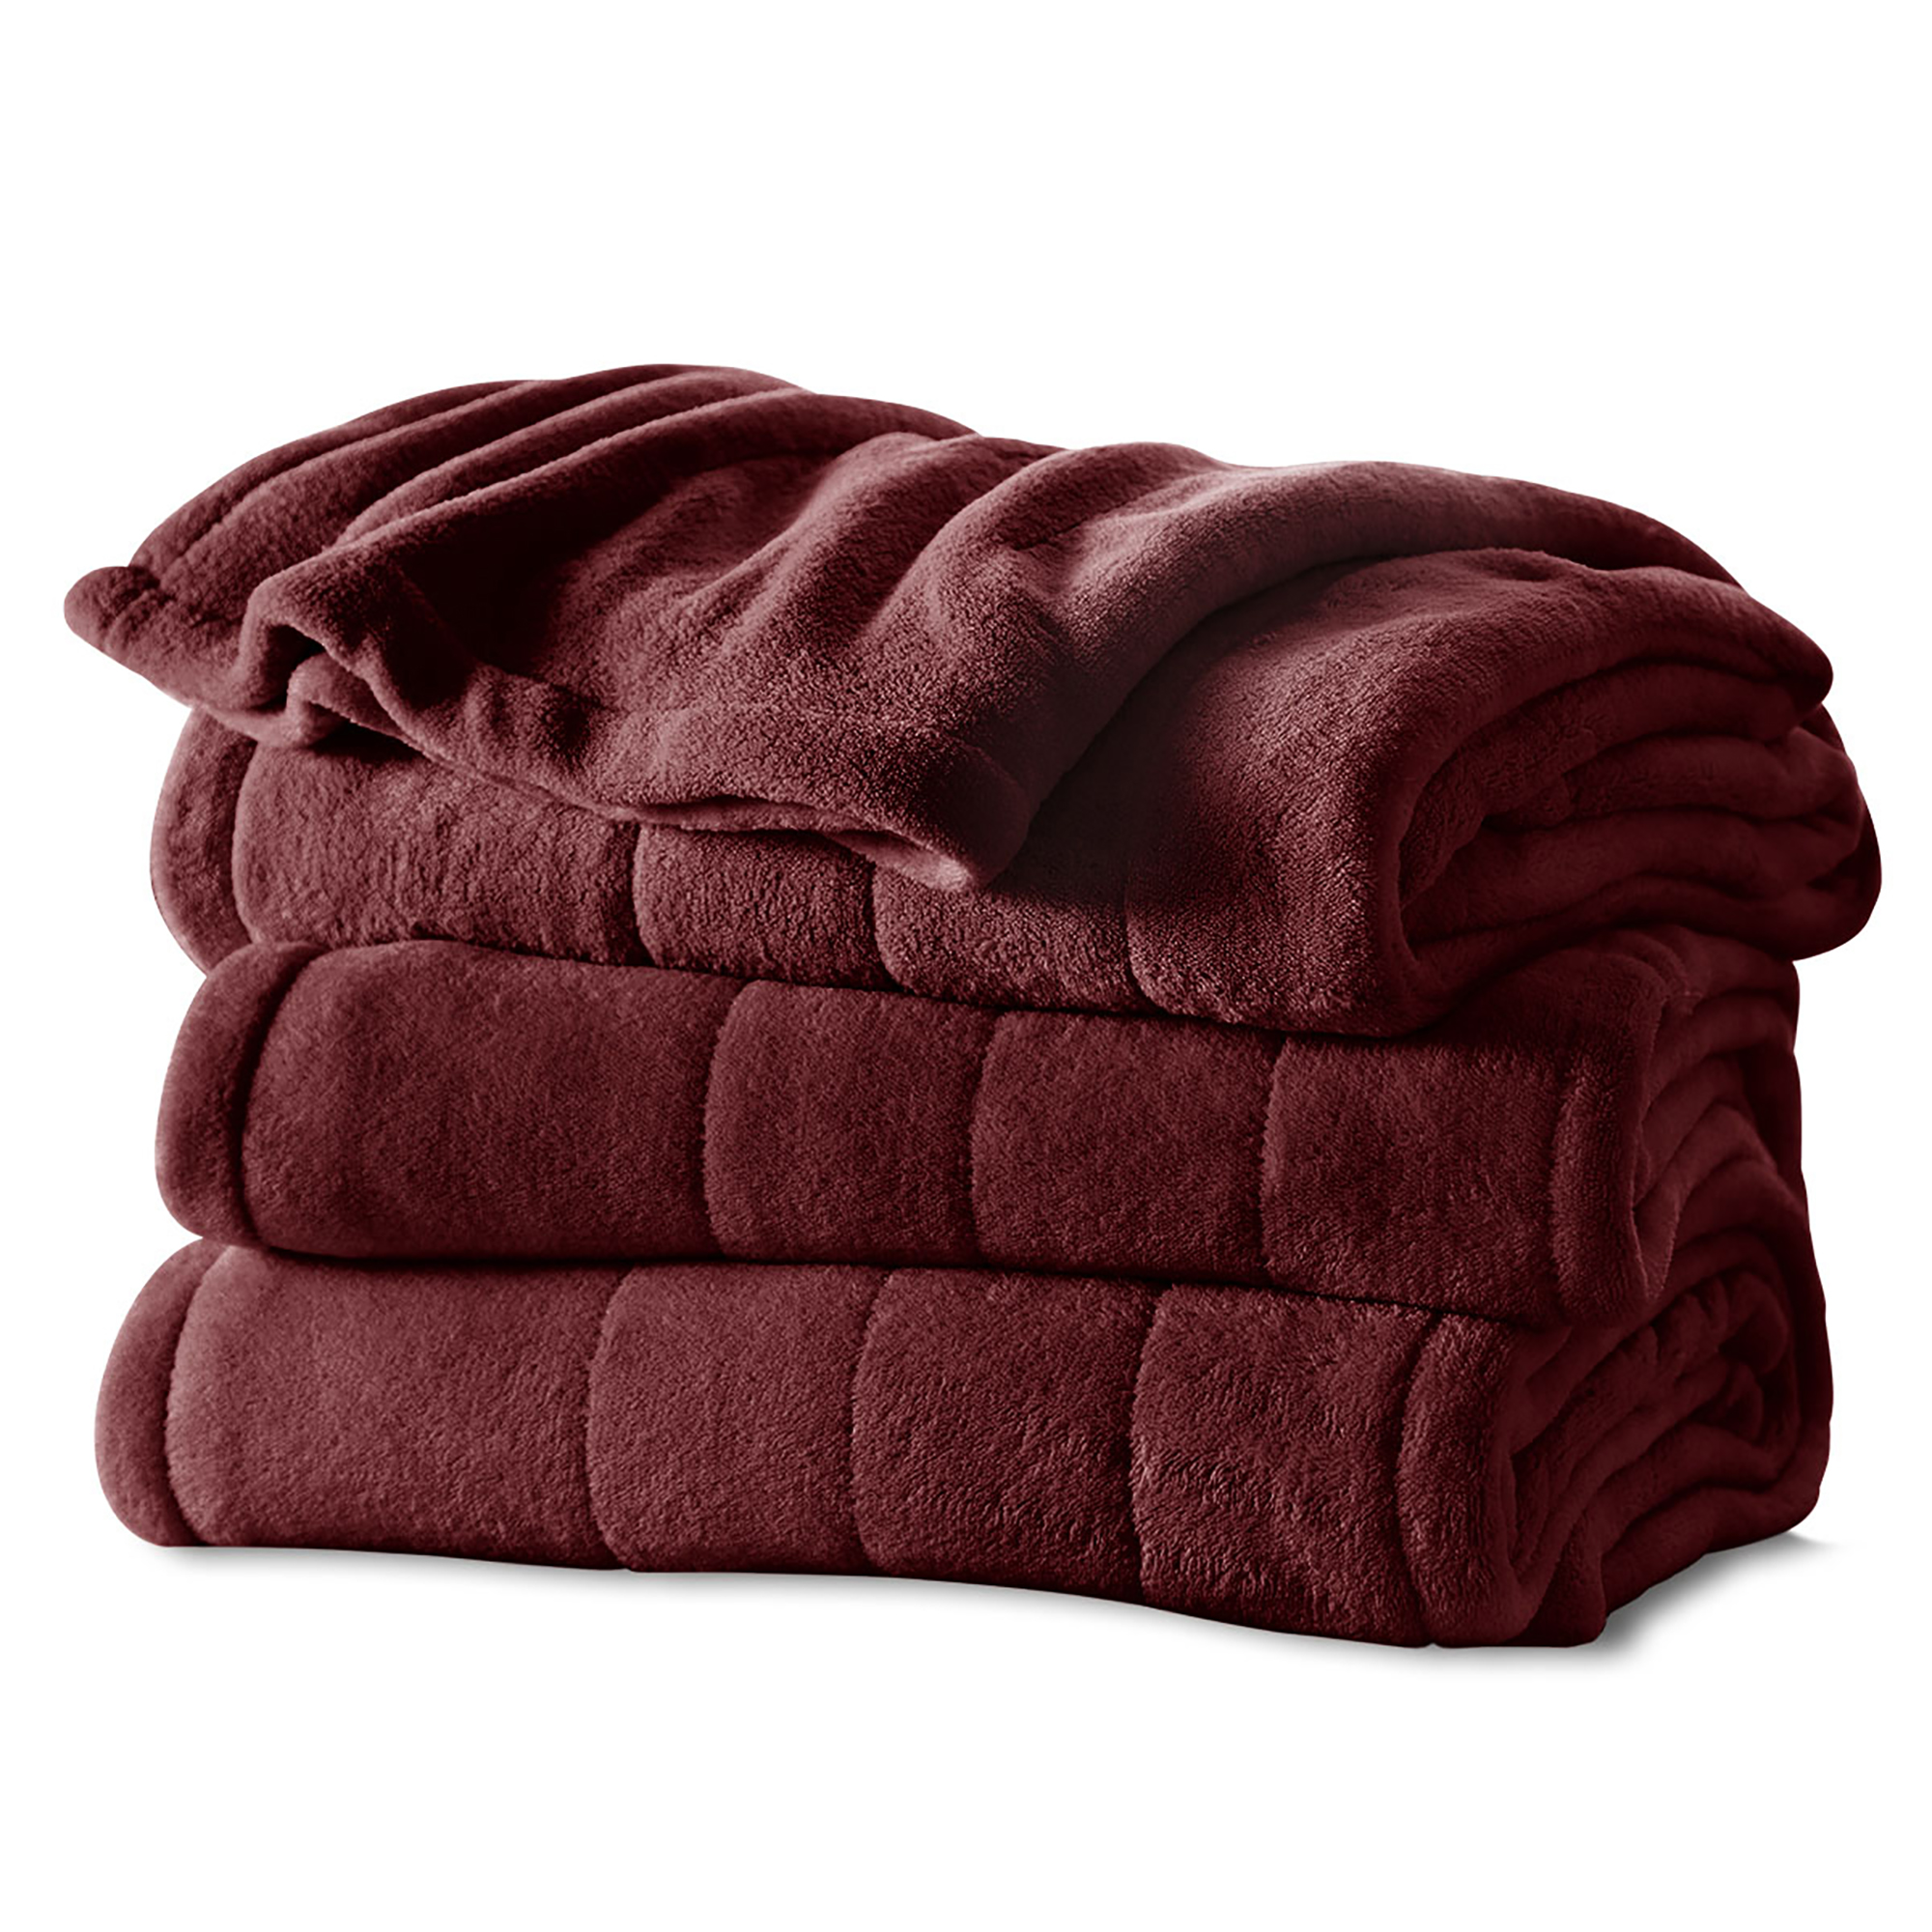 Sunbeam Electric Heated Microplush Channeled Blanket